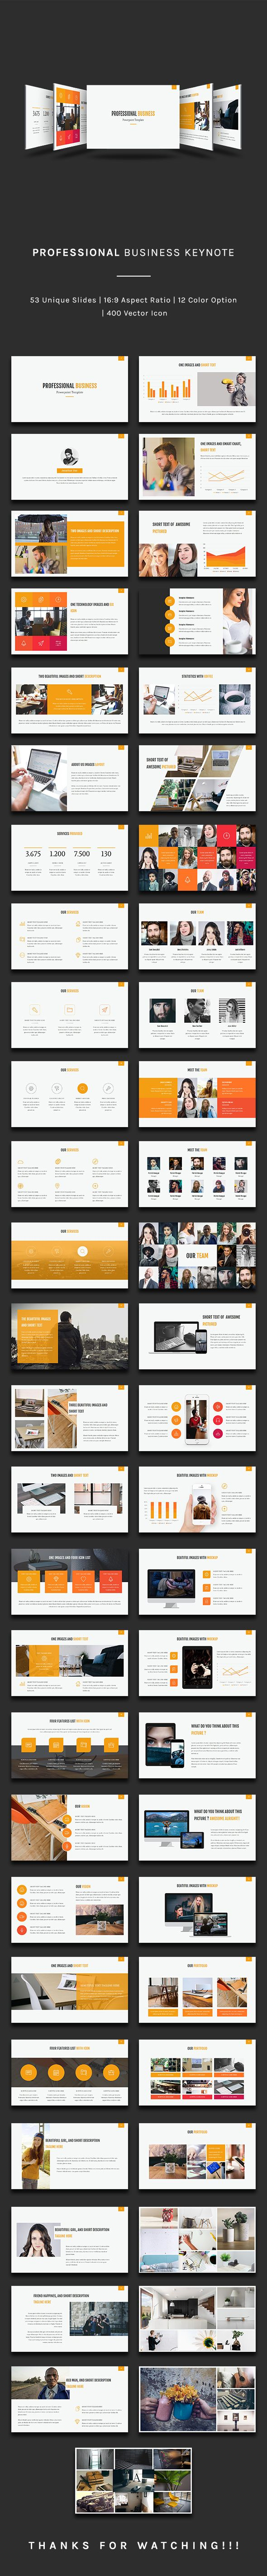 Professional Business Keynote Template - 50+ Unique Creative Slides, 400 Vector Icon